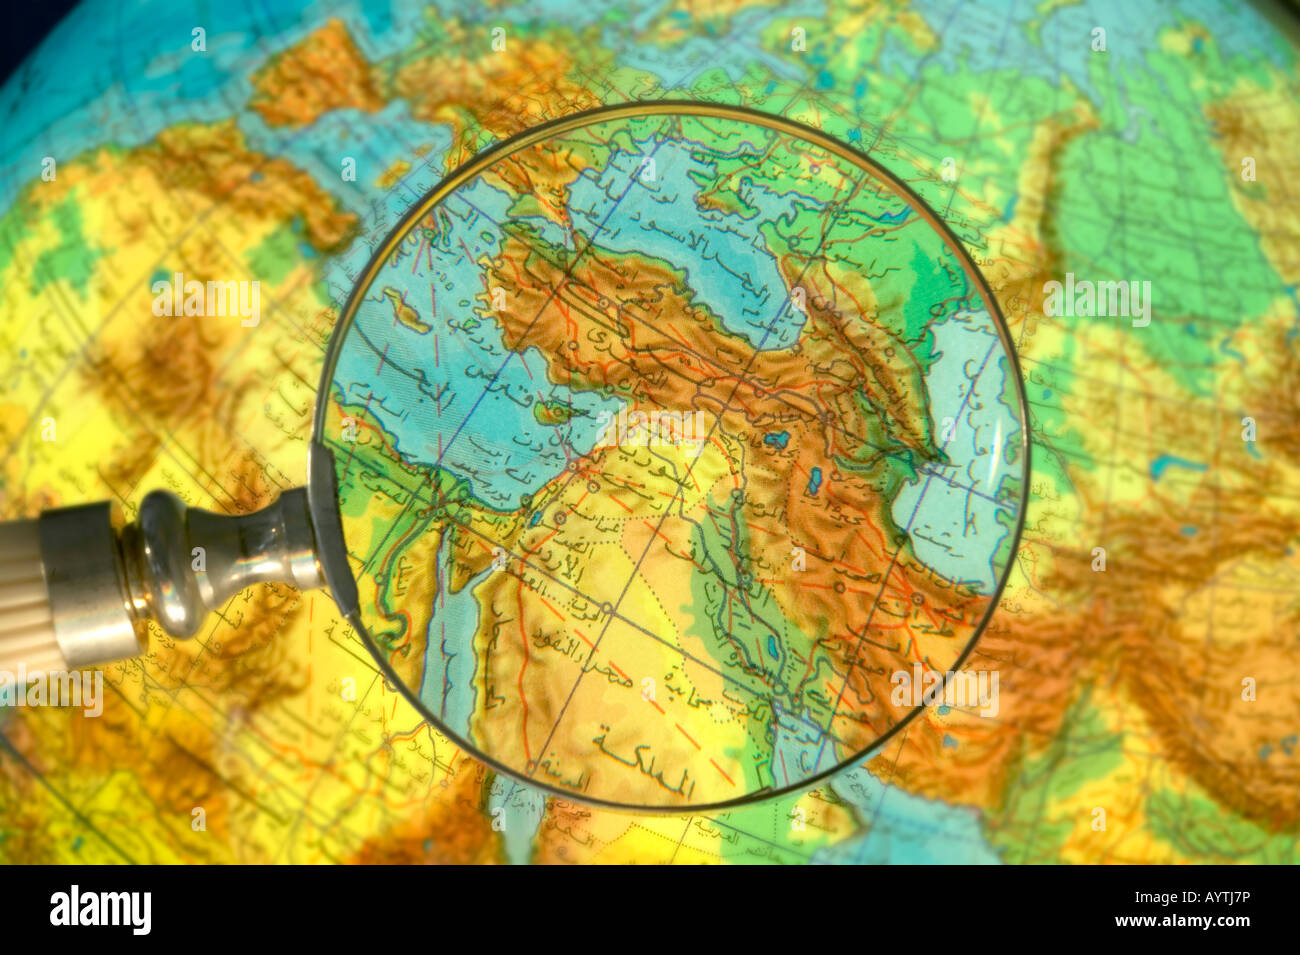 Part of world Middle East Region globe written in Arabic seen through magnifying glass - Stock Image